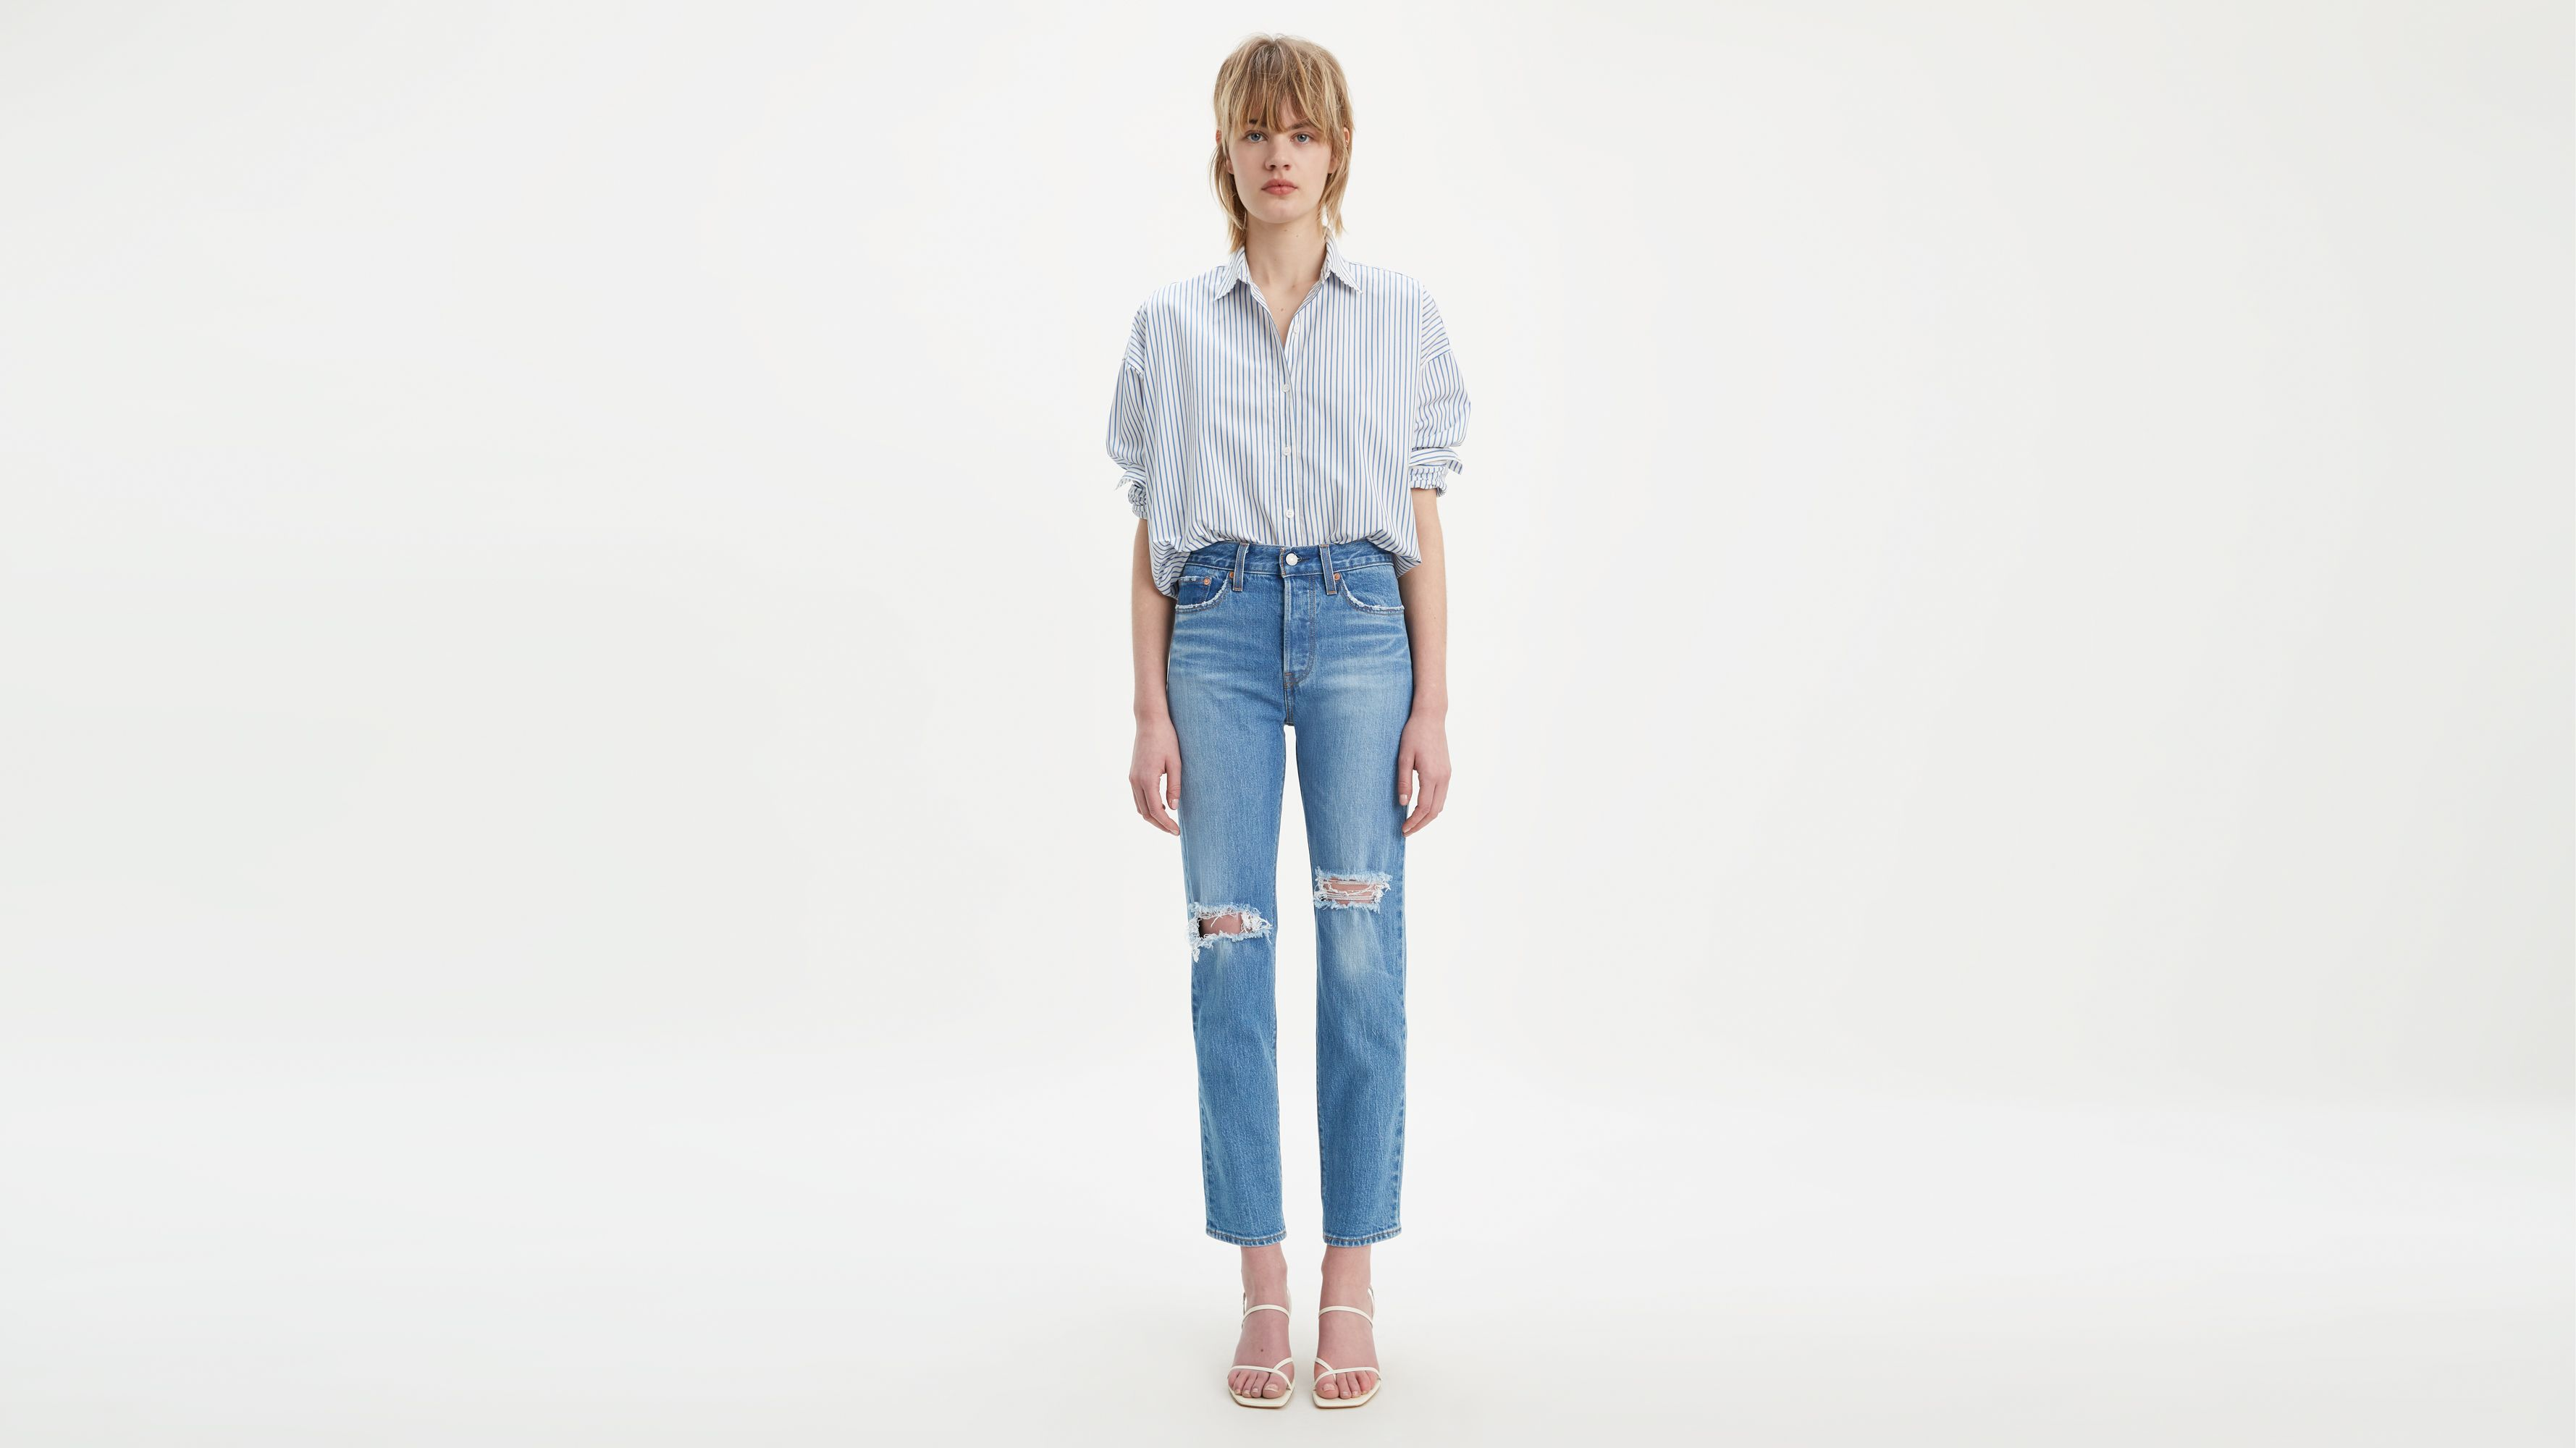 Levi's Wedgie Fit Jeans Shop the Iconic Wedgie Jean